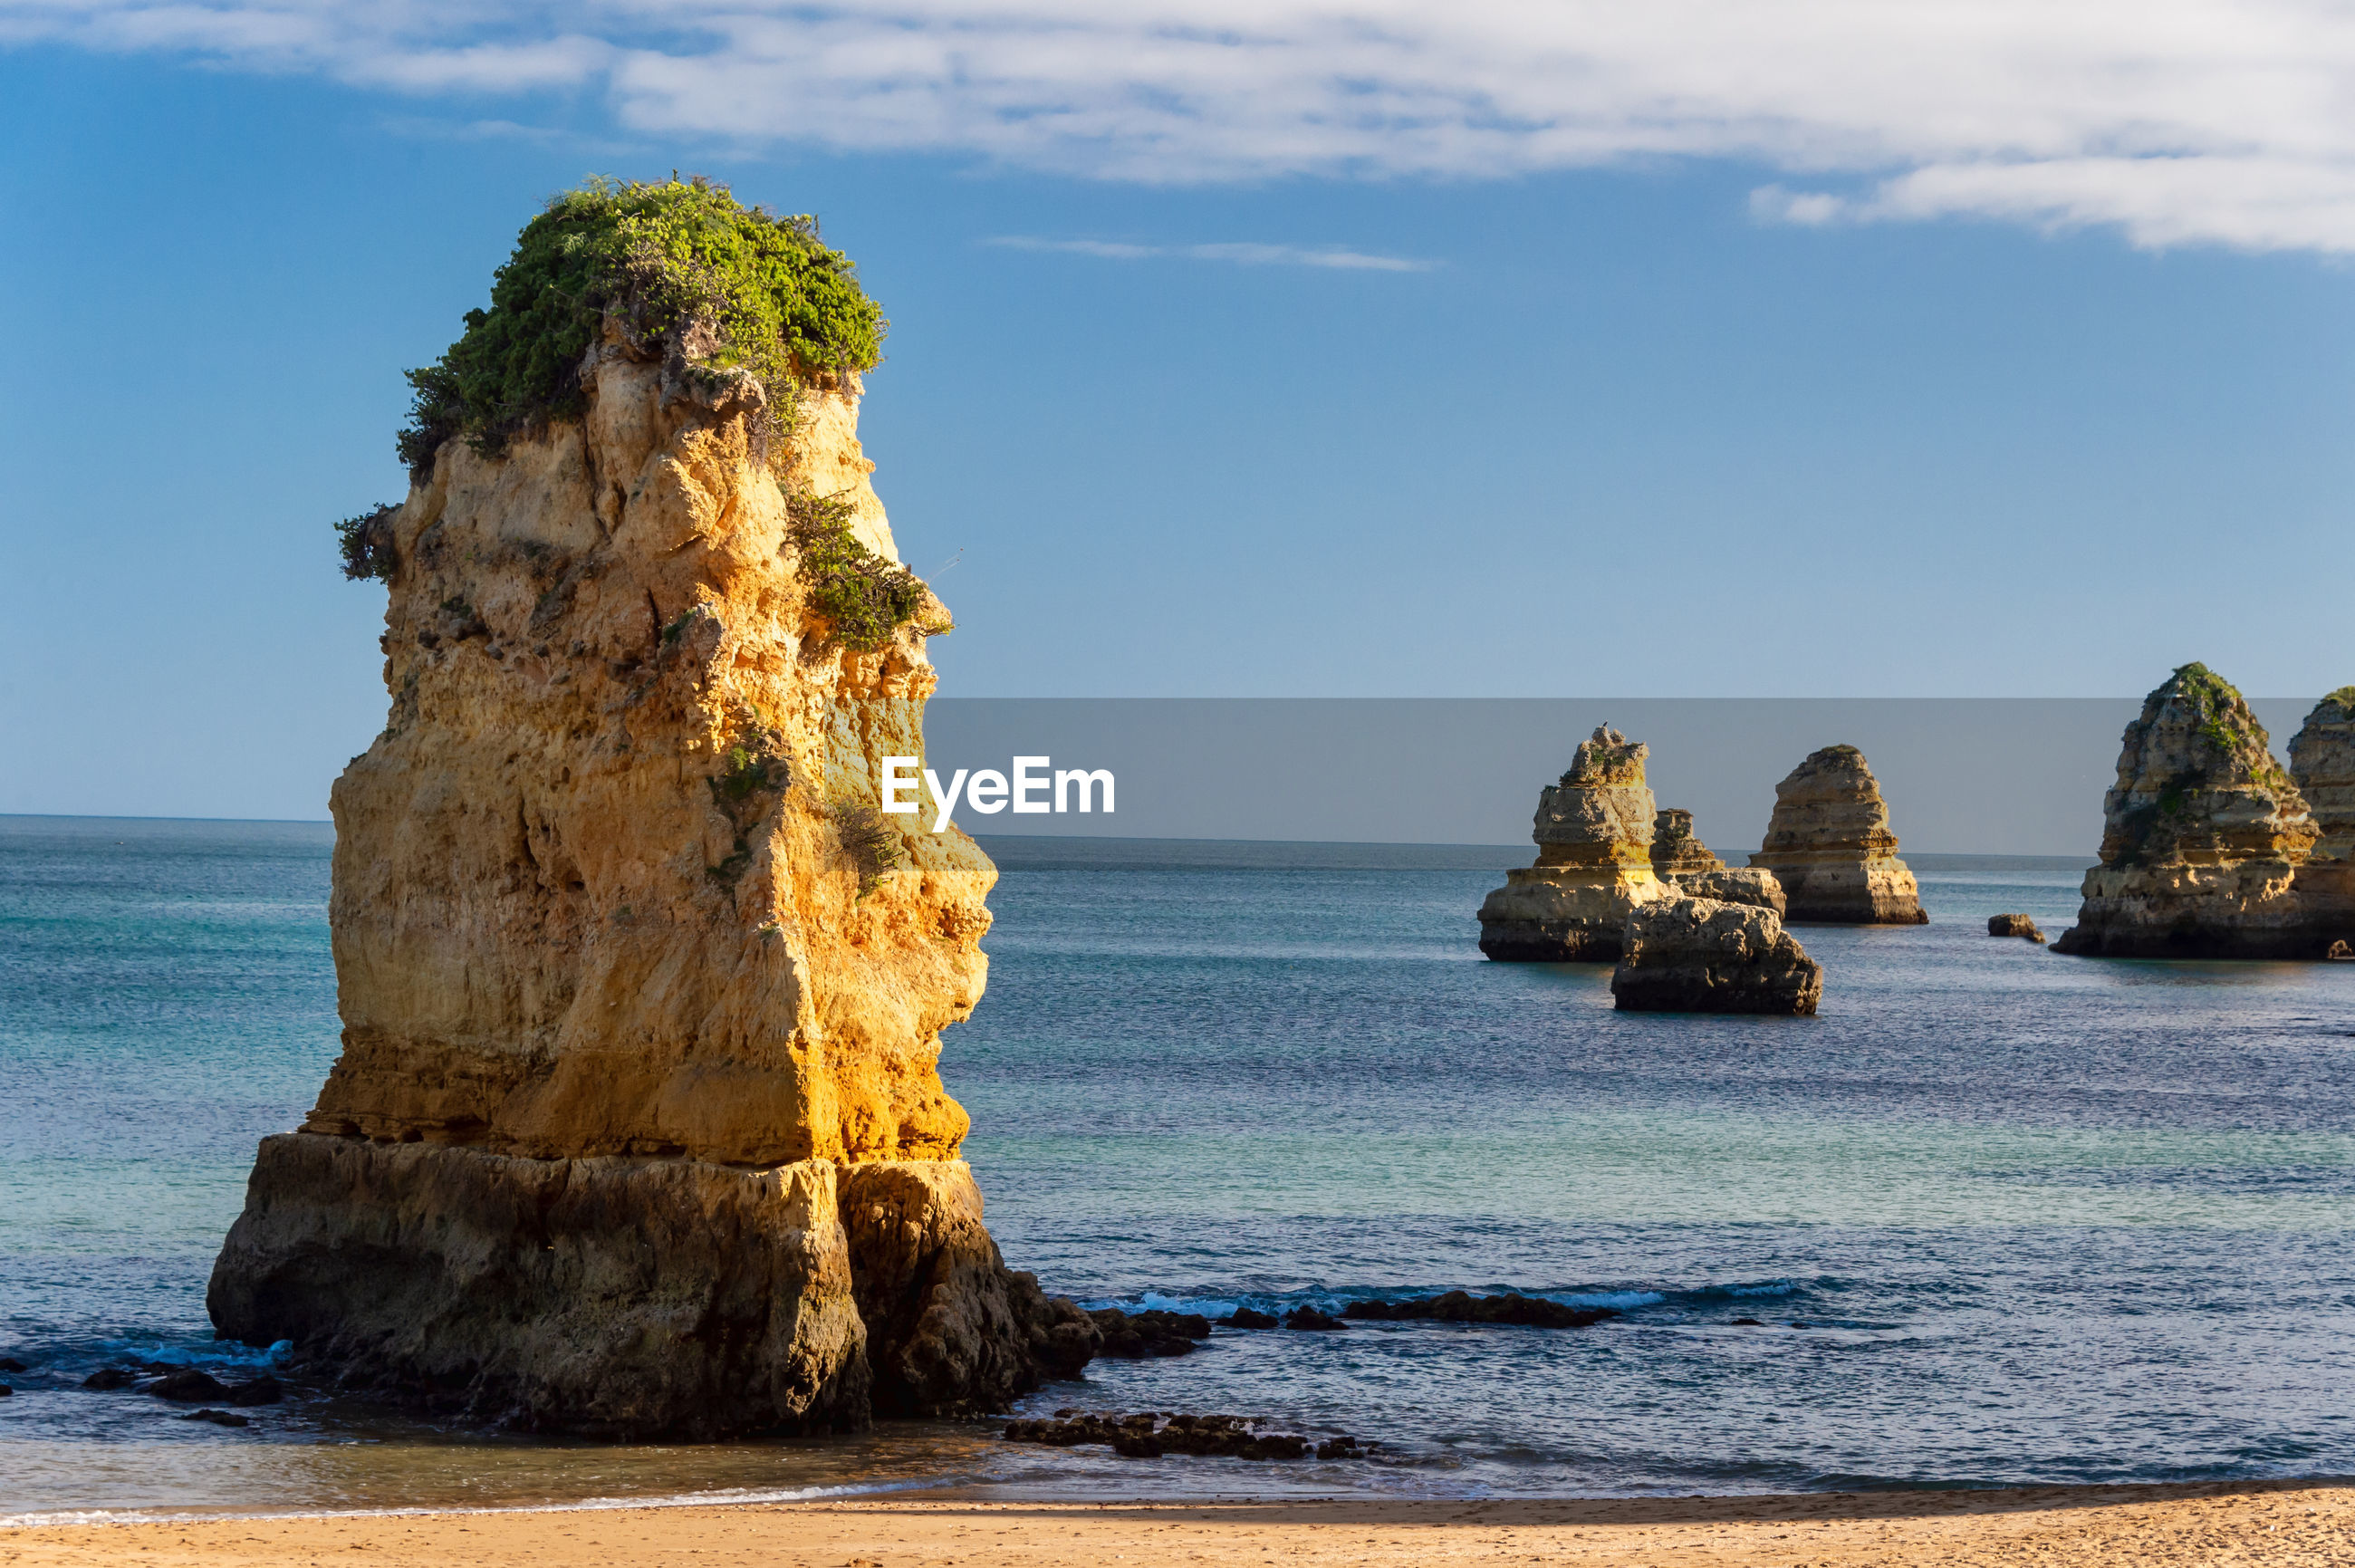 SCENIC VIEW OF ROCK FORMATION ON BEACH AGAINST SKY